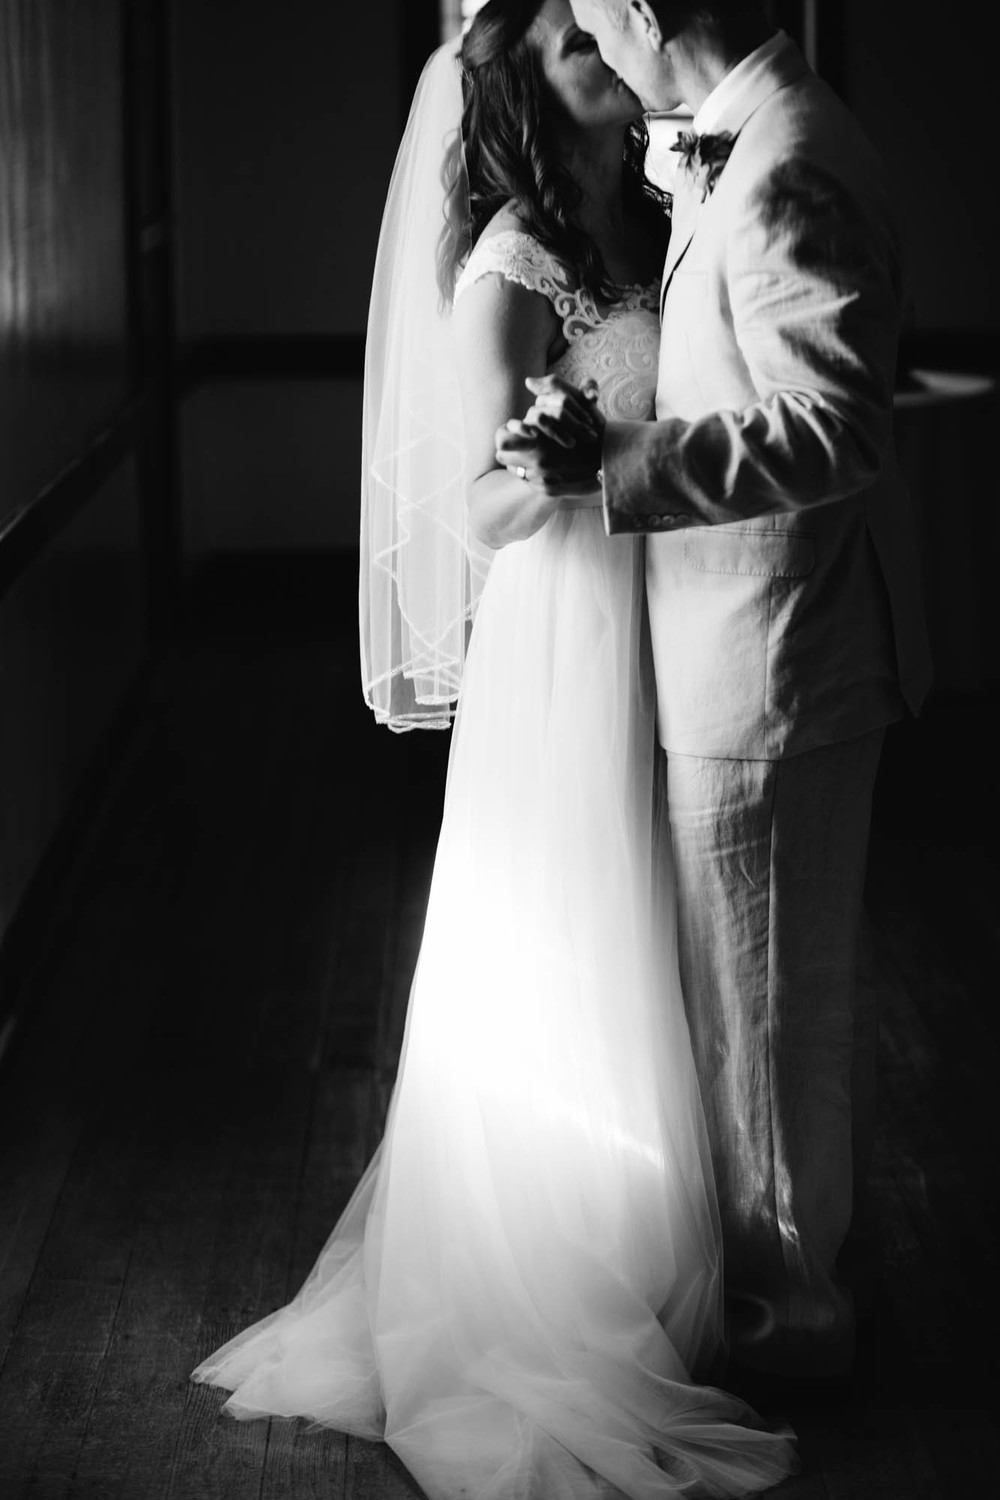 shakervillagewedding-77.jpg